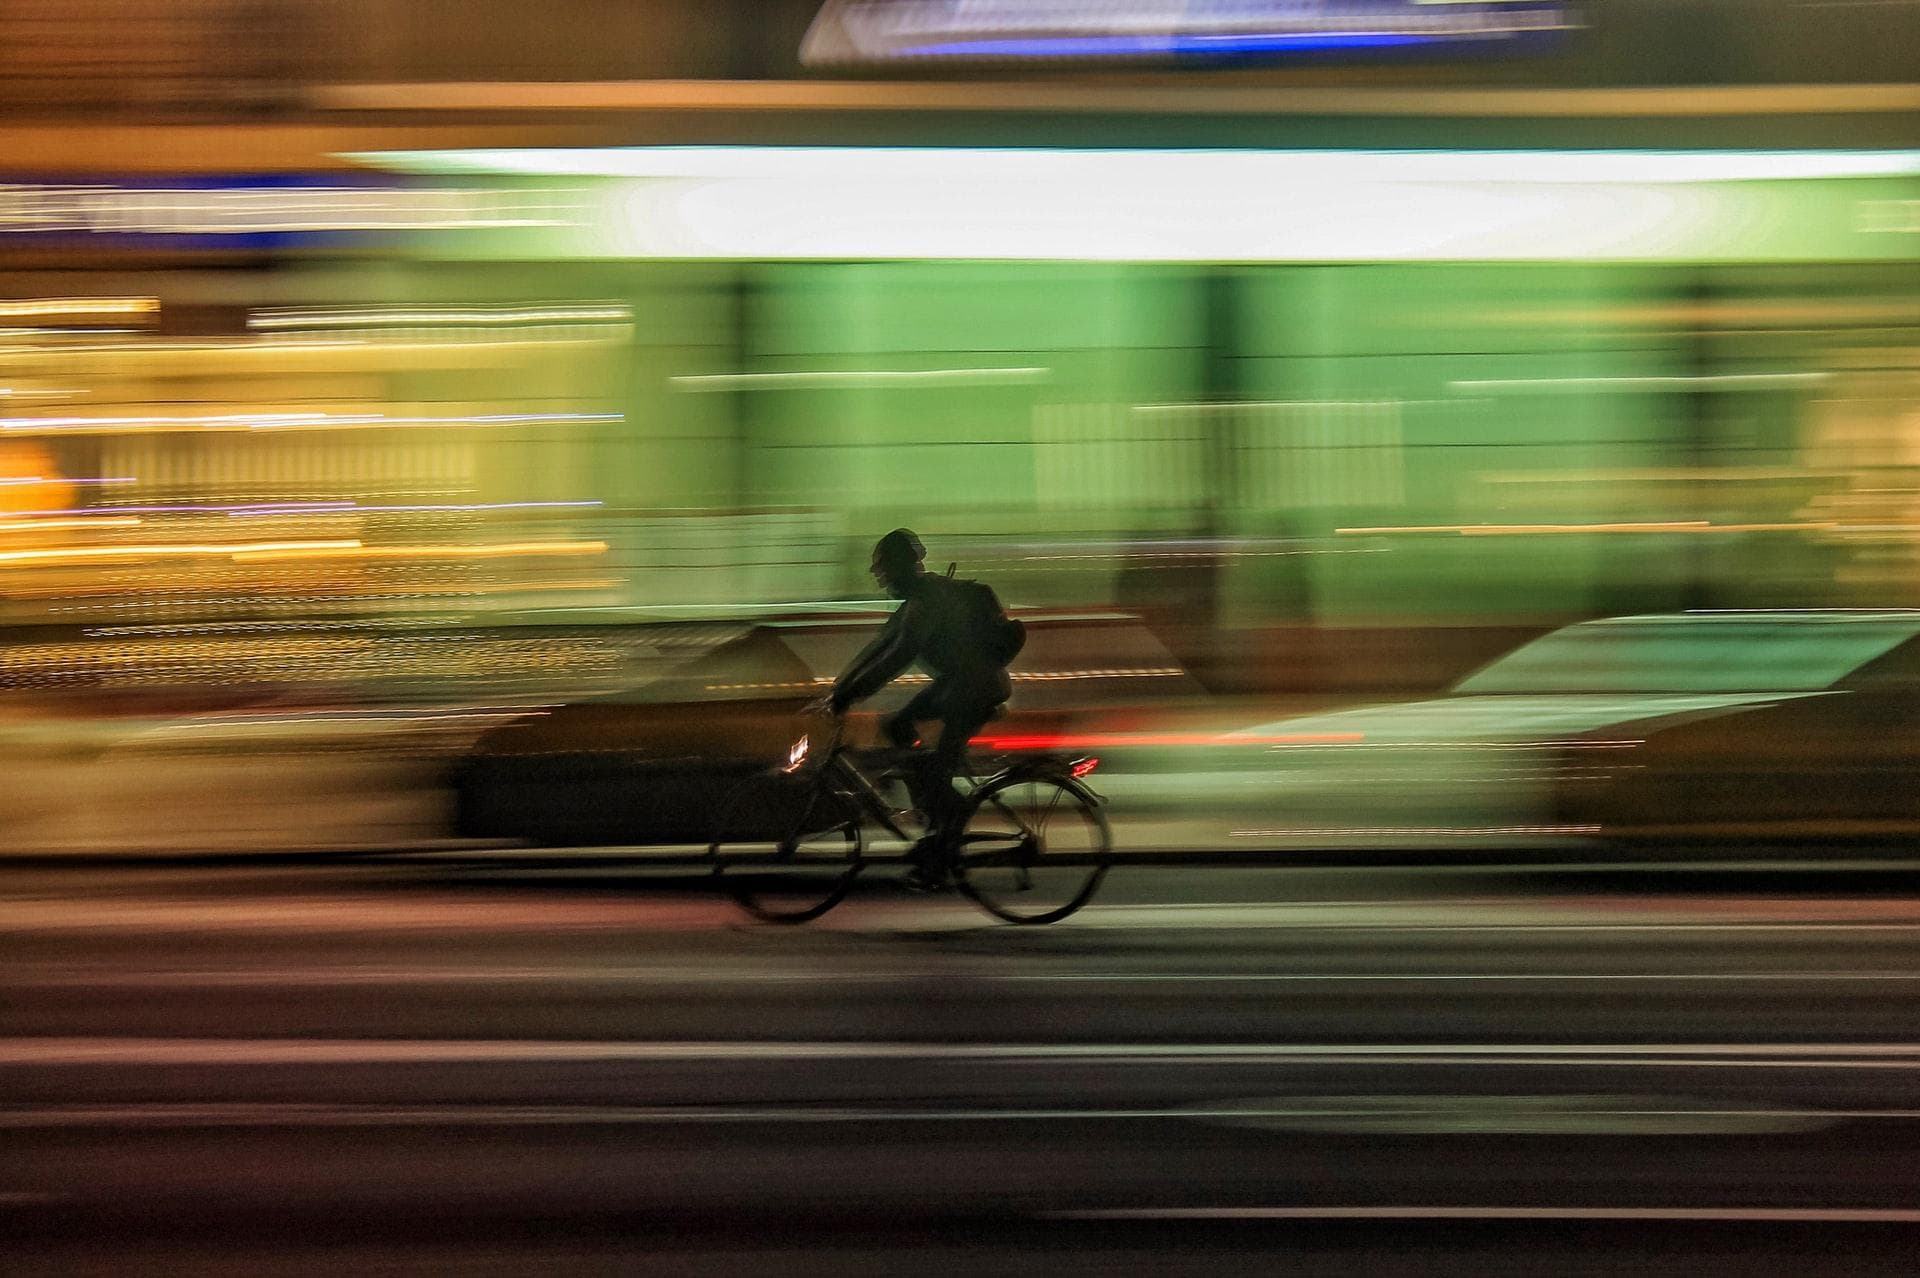 A fast biker. Background are city lights at night, blurred due to the high speed of biker